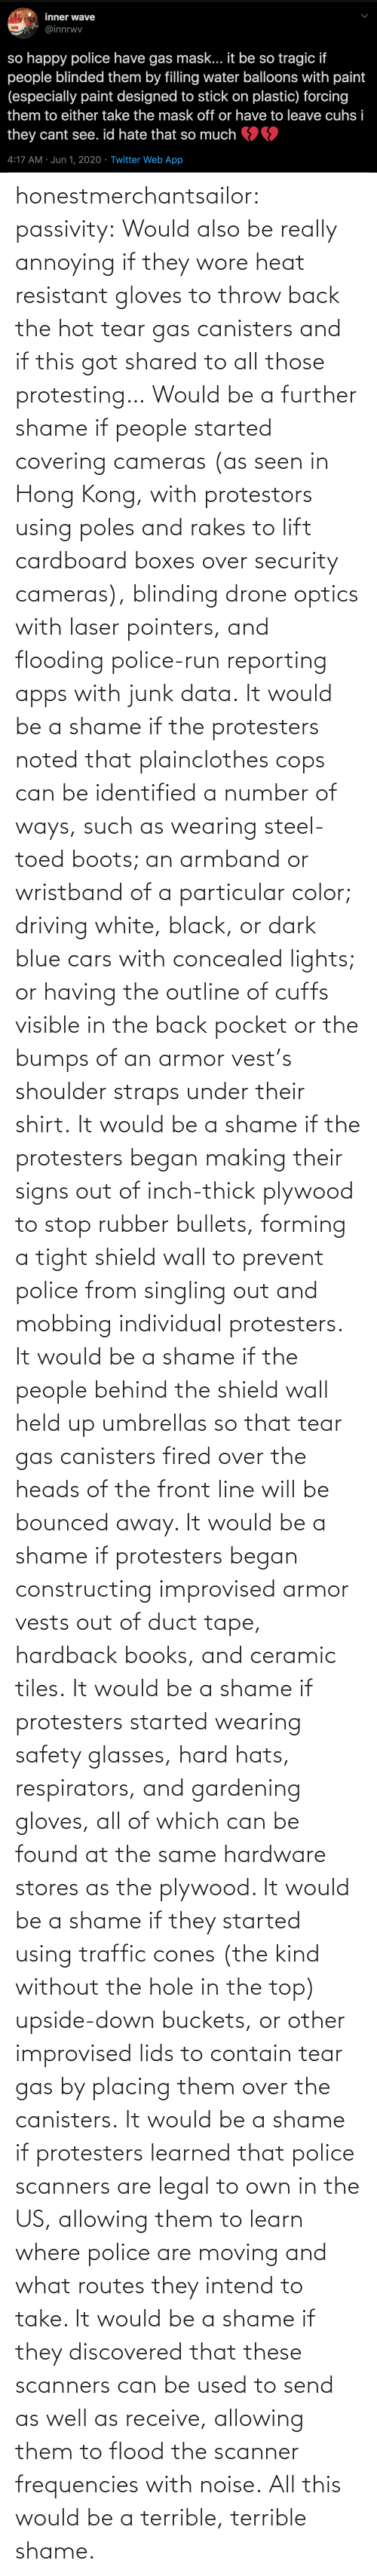 books: honestmerchantsailor:  passivity: Would also be really annoying if they wore heat resistant gloves to throw back the hot tear gas canisters and if this got shared to all those protesting… Would be a further shame if people started covering cameras (as seen in Hong Kong, with protestors using poles and rakes to lift cardboard boxes over security cameras), blinding drone optics with laser pointers, and flooding police-run reporting apps with junk data. It would be a shame if the protesters noted that plainclothes cops can be identified a number of ways, such as wearing steel-toed boots; an armband or wristband of a particular color; driving white, black, or dark blue cars with concealed lights; or having the outline of cuffs visible in the back pocket or the bumps of an armor vest's shoulder straps under their shirt. It would be a shame if the protesters began making their signs out of inch-thick plywood to stop rubber bullets, forming a tight shield wall to prevent police from singling out and mobbing individual protesters. It would be a shame if the people behind the shield wall held up umbrellas so that tear gas canisters fired over the heads of the front line will be bounced away. It would be a shame if protesters began constructing improvised armor vests out of duct tape, hardback books, and ceramic tiles. It would be a shame if protesters started wearing safety glasses, hard hats, respirators, and gardening gloves, all of which can be found at the same hardware stores as the plywood. It would be a shame if they started using traffic cones (the kind without the hole in the top) upside-down buckets, or other improvised lids to contain tear gas by placing them over the canisters. It would be a shame if protesters learned that police scanners are legal to own in the US, allowing them to learn where police are moving and what routes they intend to take. It would be a shame if they discovered that these scanners can be used to send as well as receive, allowing them to flood the scanner frequencies with noise. All this would be a terrible, terrible shame.